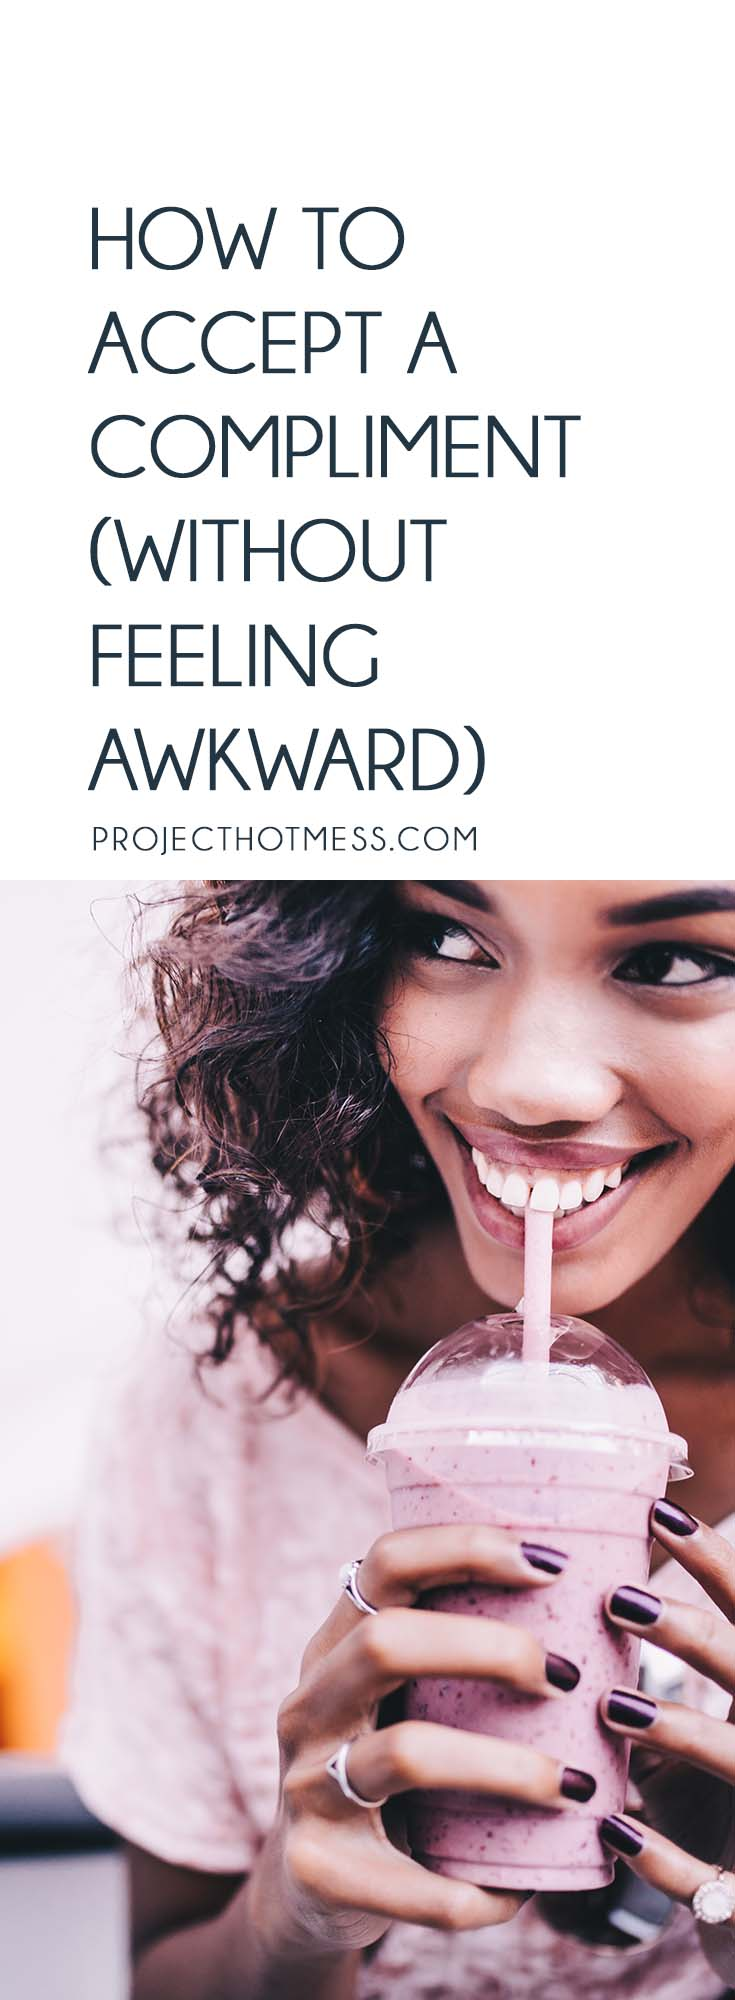 We all love receiving compliments... until they make us feel awkward and uncomfortable. So why not learn how to accept a compliment with genuine gratitude? Here's how you can start to accept compliments that are given to you without feeling awkward.